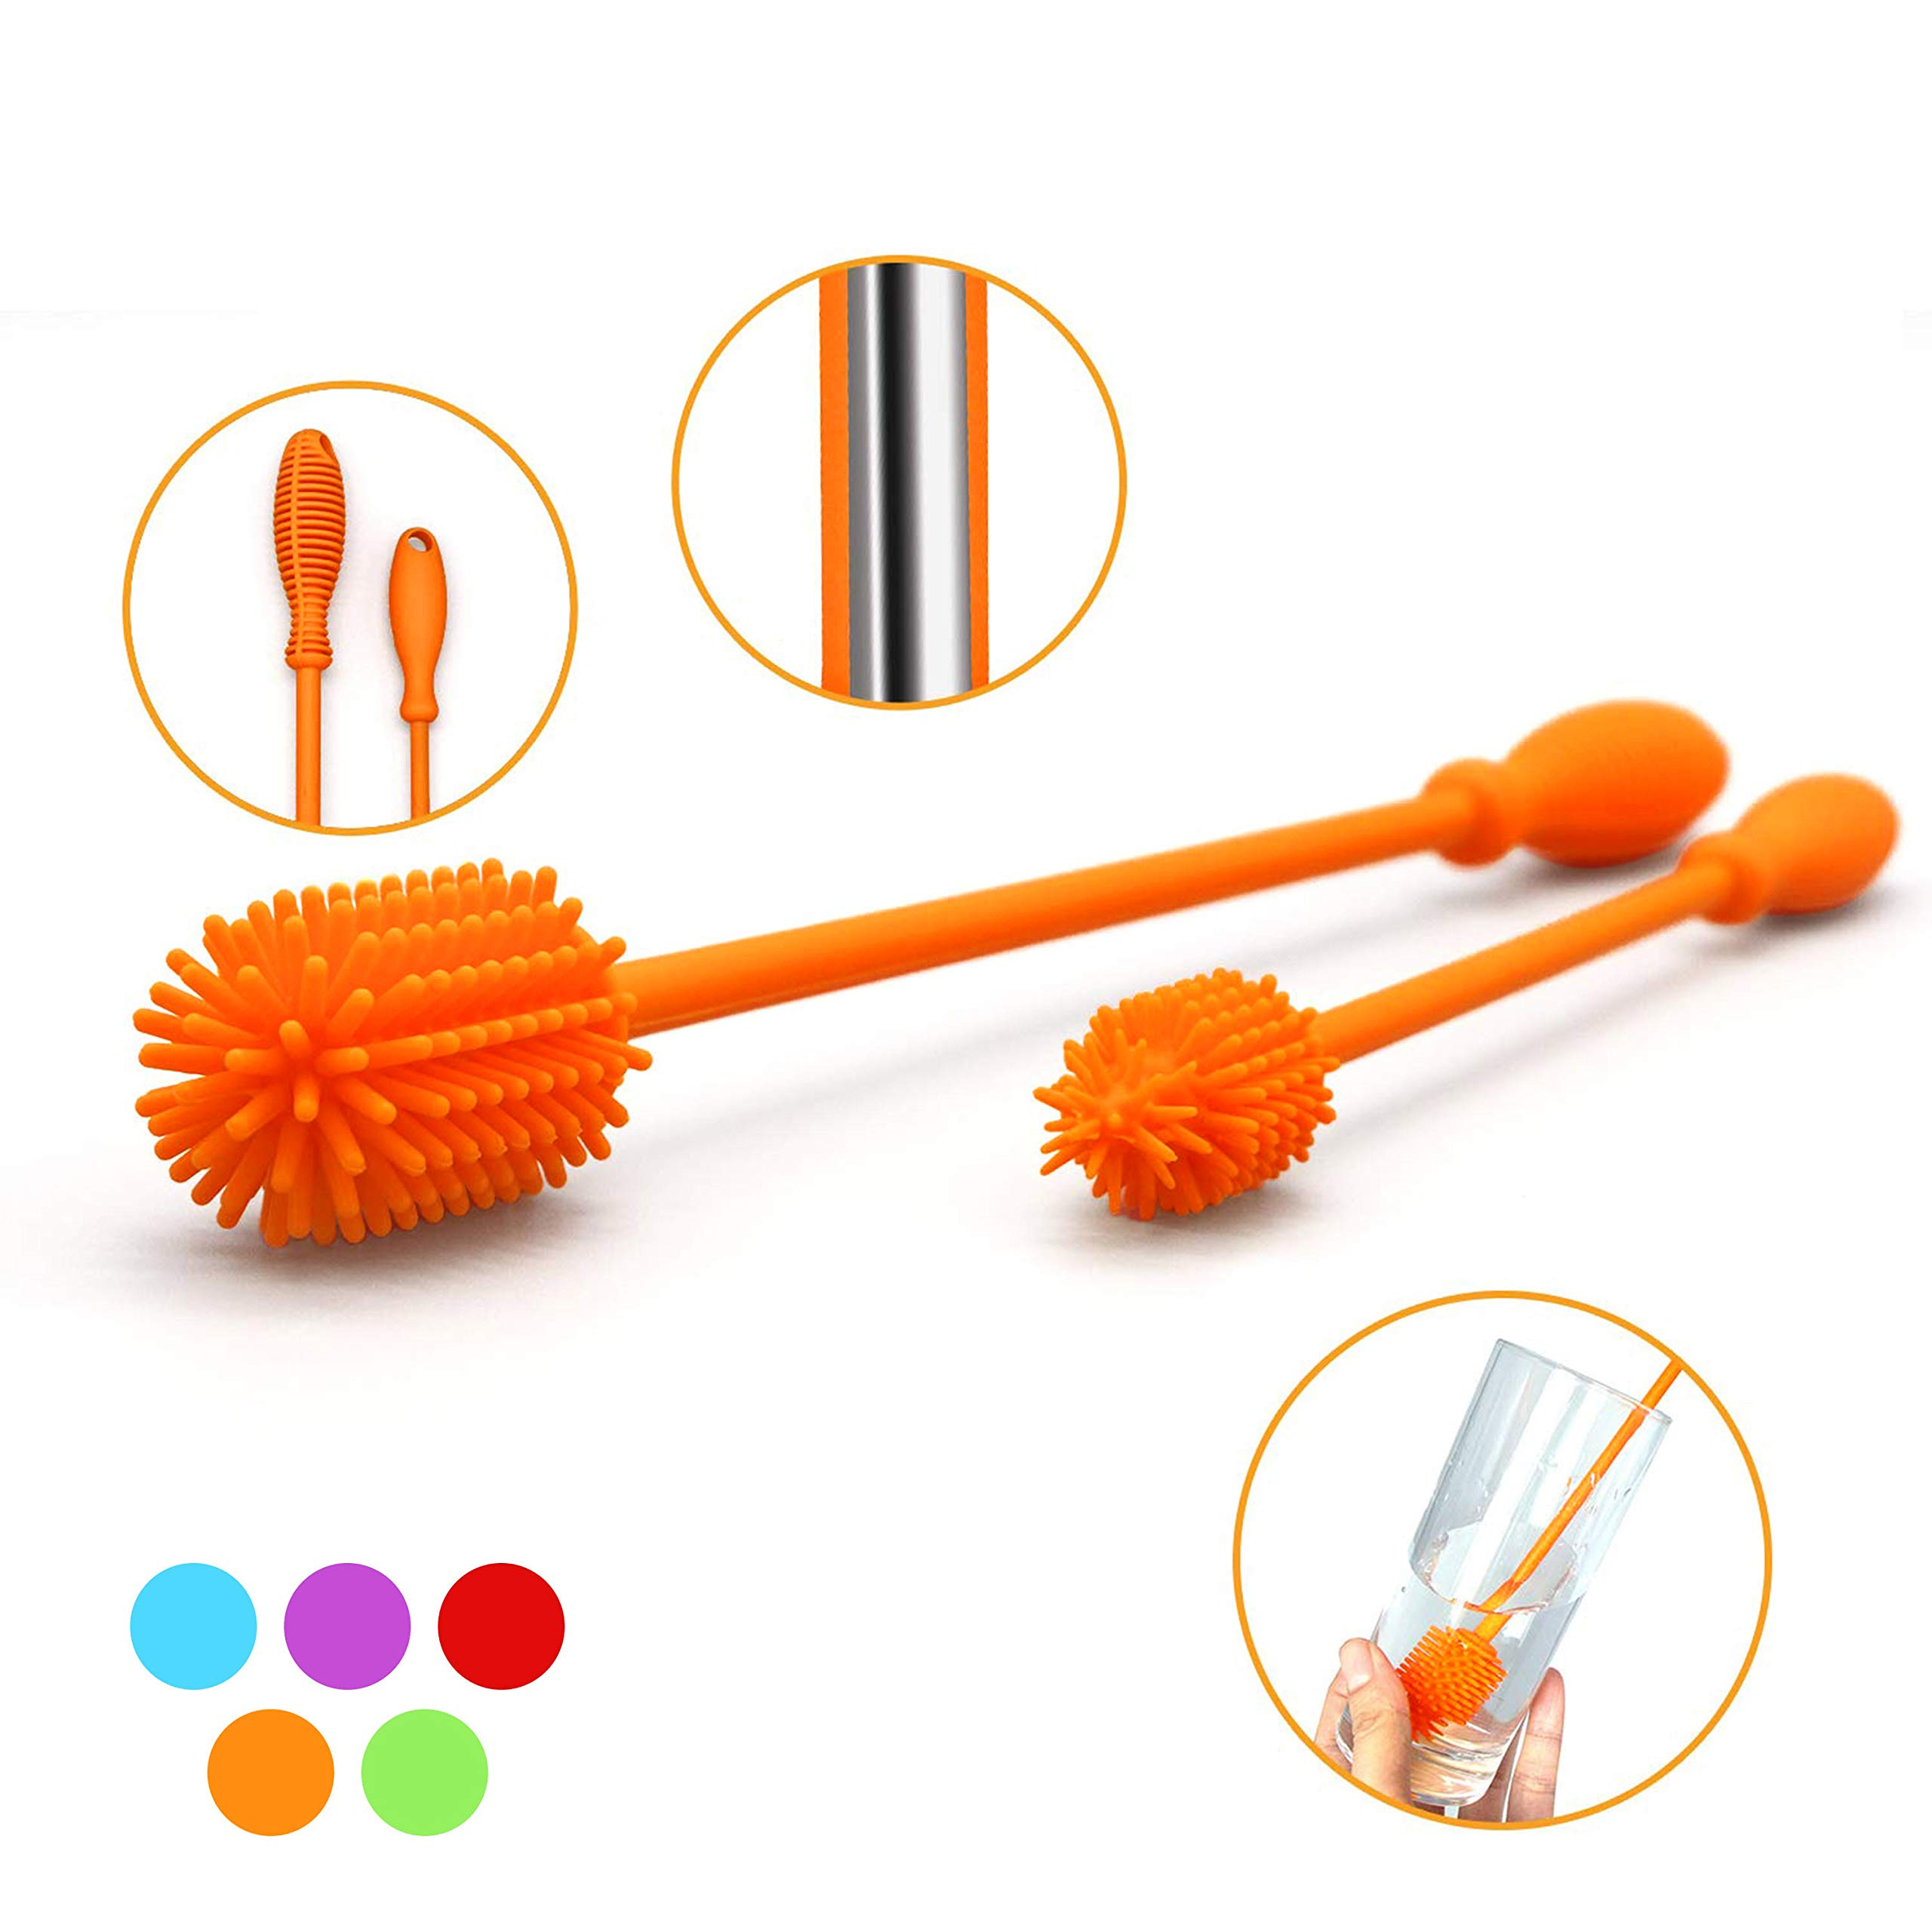 """Silicone Bottle Brush with 15"""" Long Handle [Set of 2] for Cleaning Baby Bottles, Hydro Flasks, Sports Water Bottles, Vases, Narrow Neck Glassware - Includes 15"""" and 9.5"""" Bottle Cleaning Brush (Orange)"""